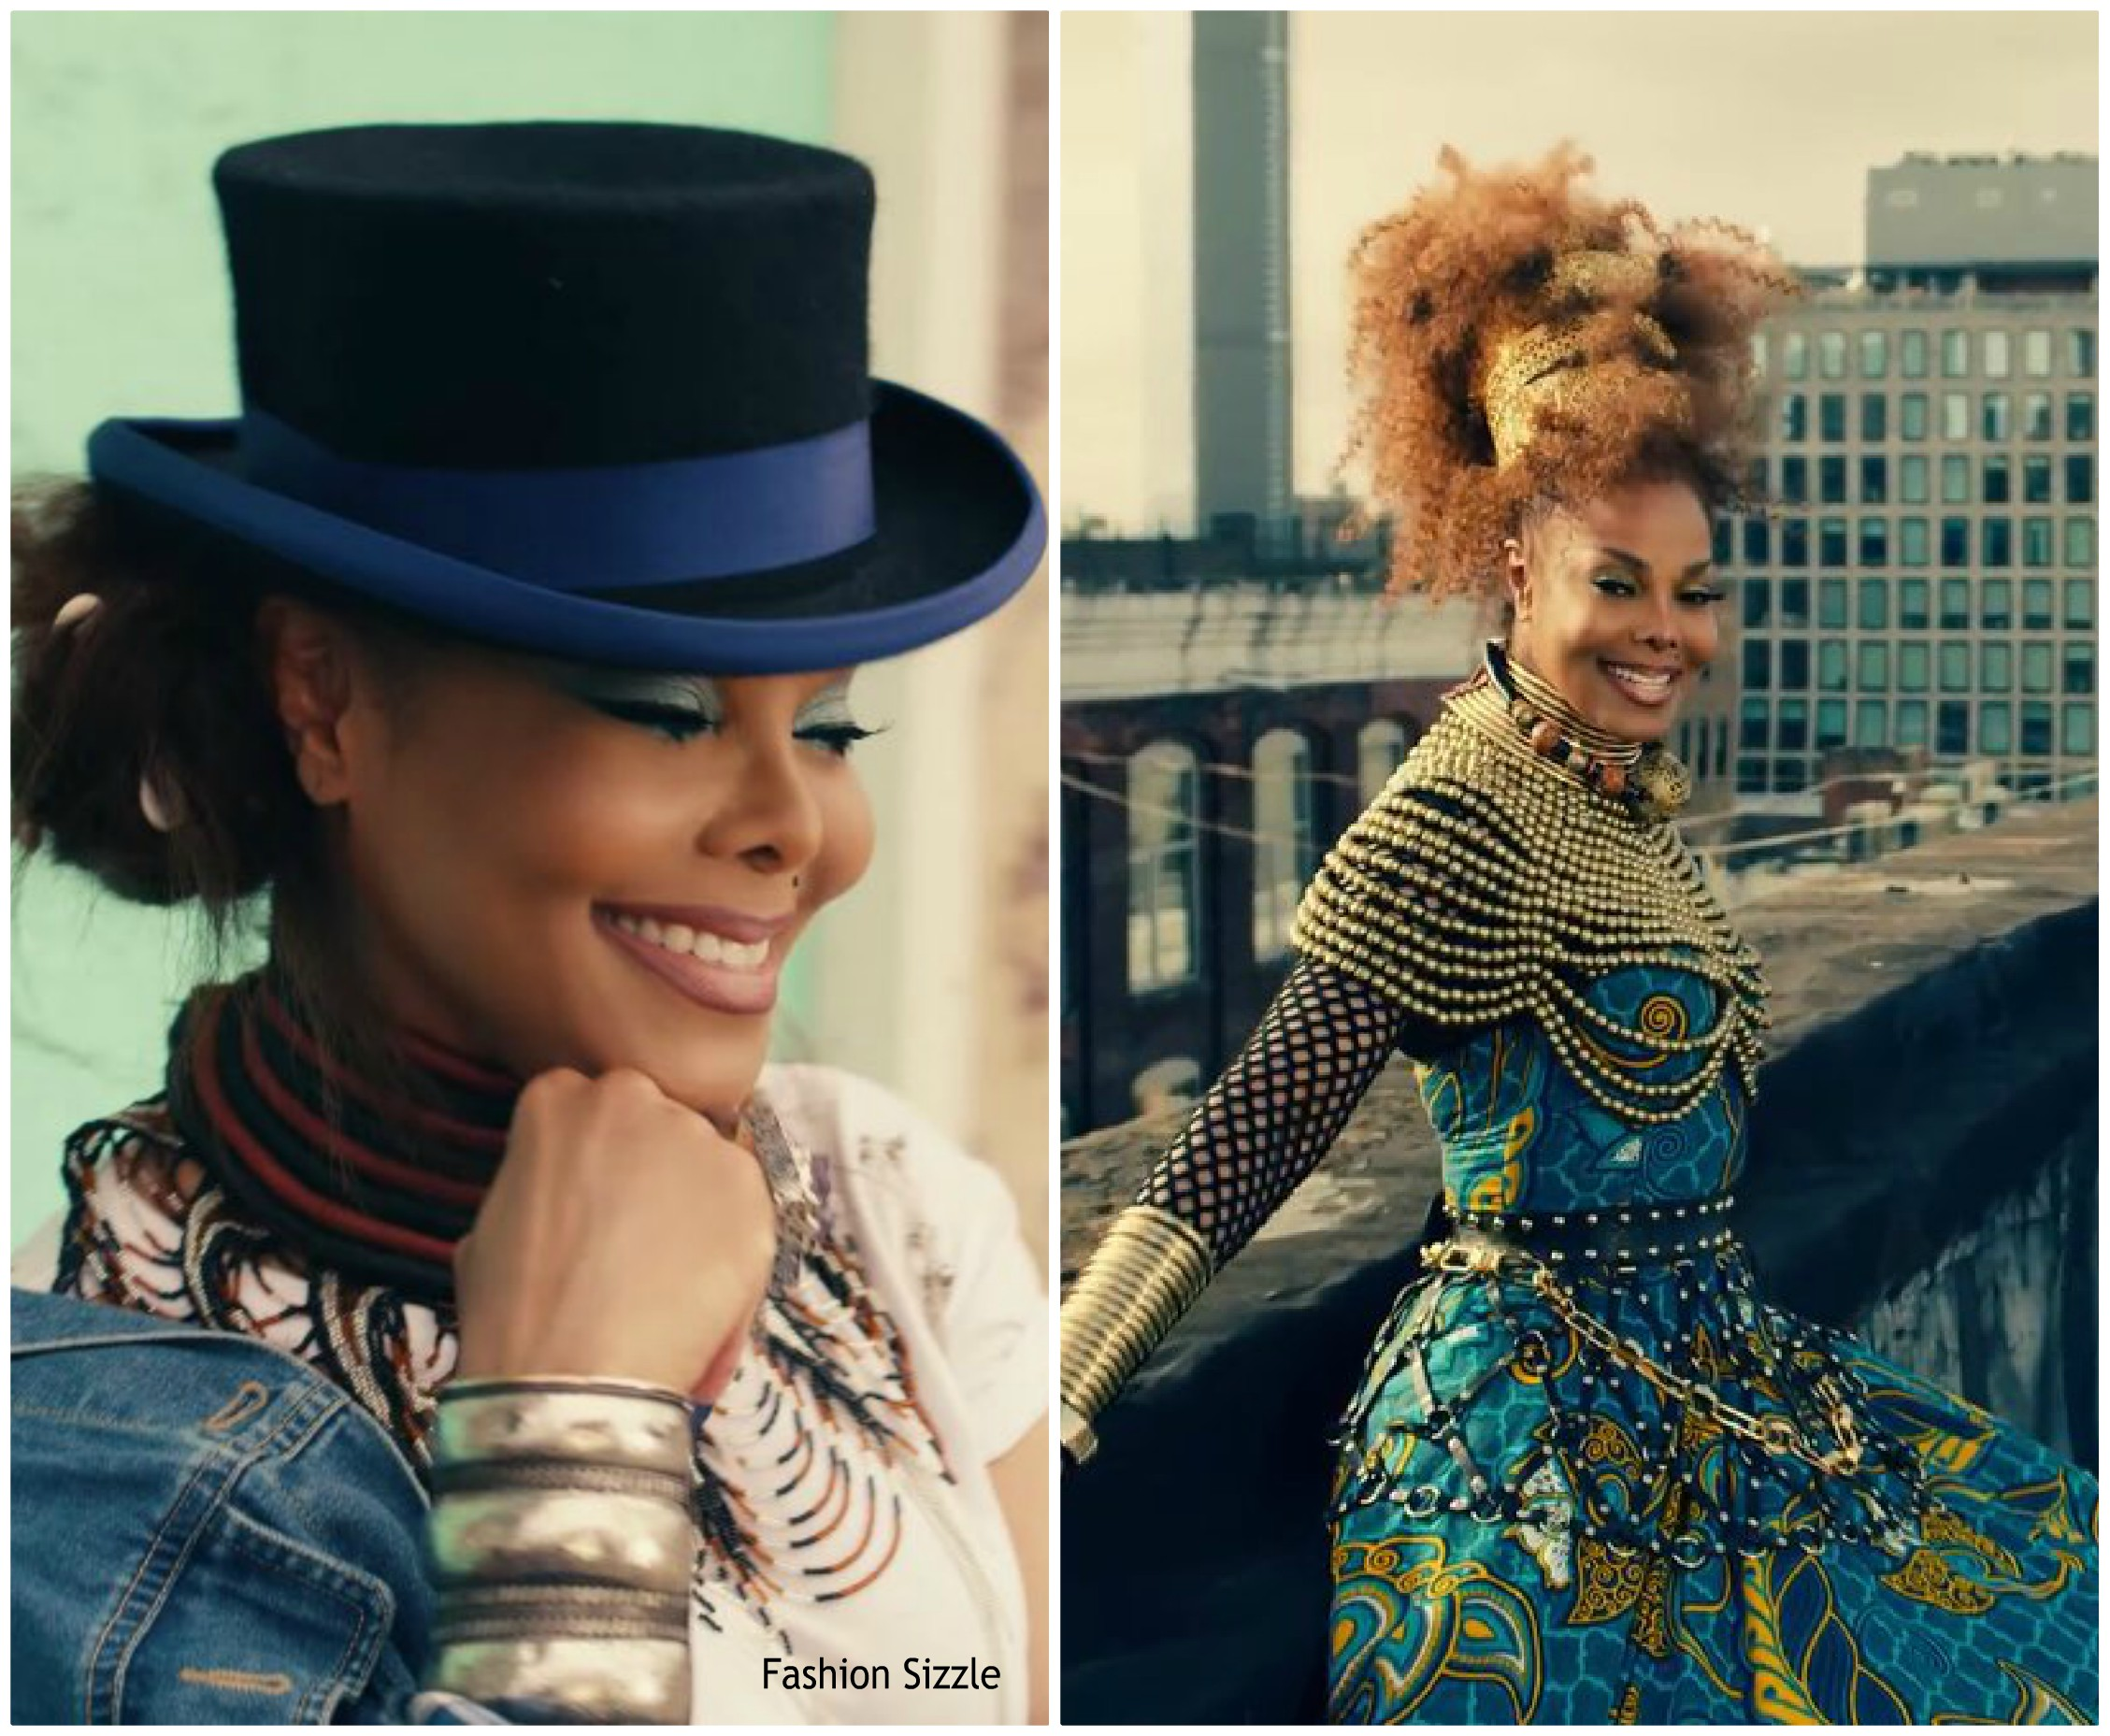 janet-jackson-releases-made-for-now-music-video-fest-daddy-yankee